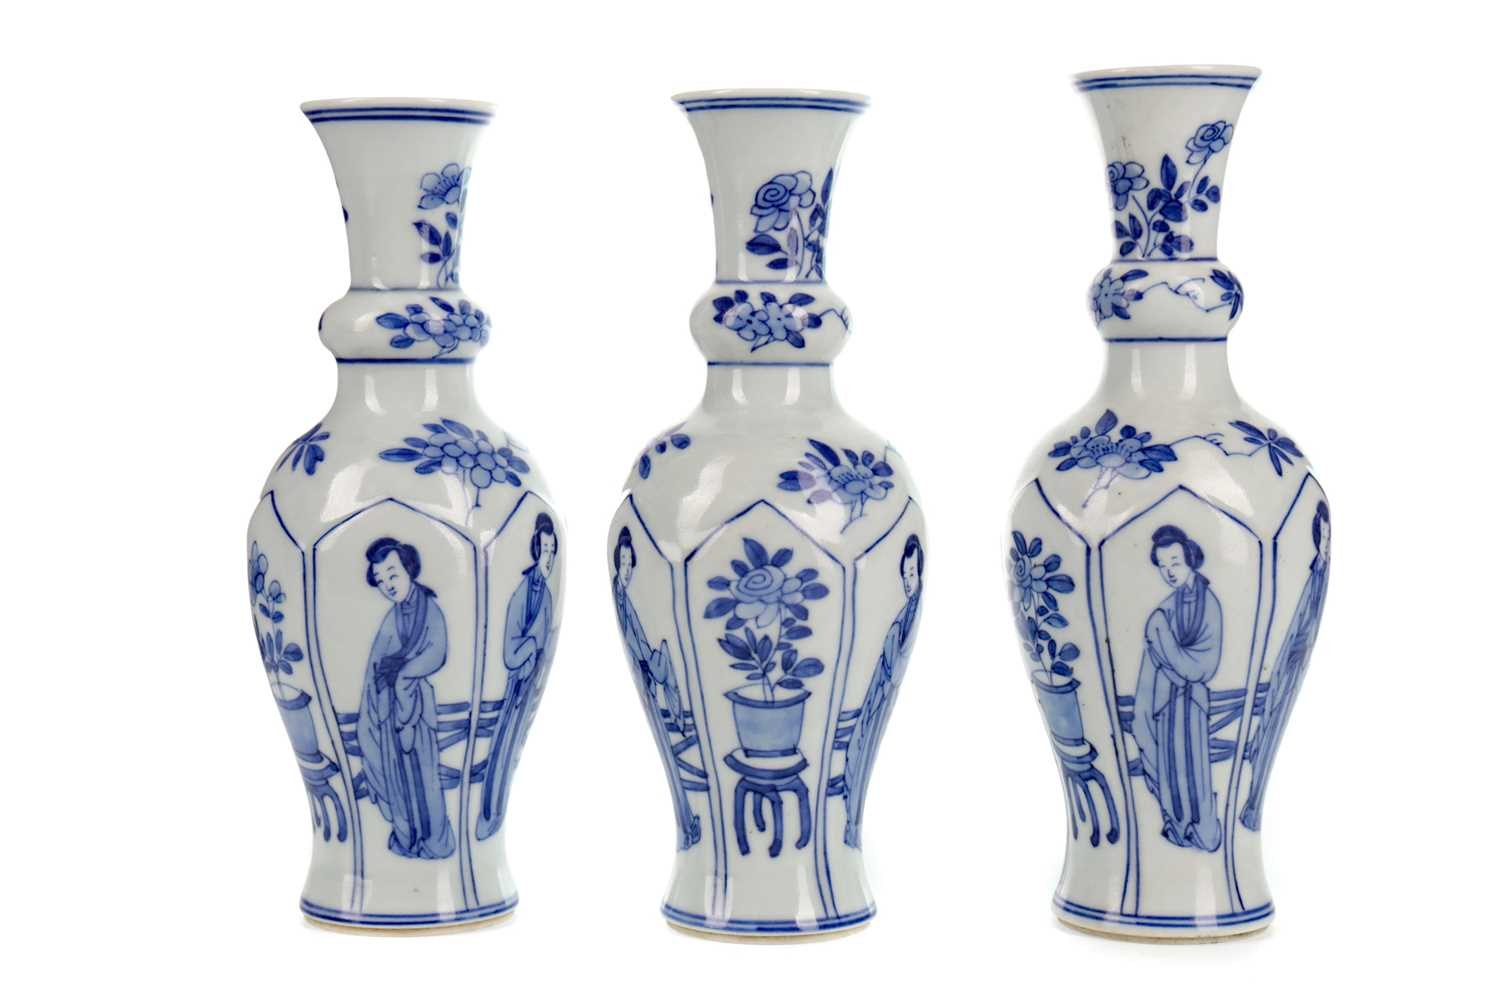 Lot 1658 - A SET OF THREE 20TH CENTURY CHINESE VASES